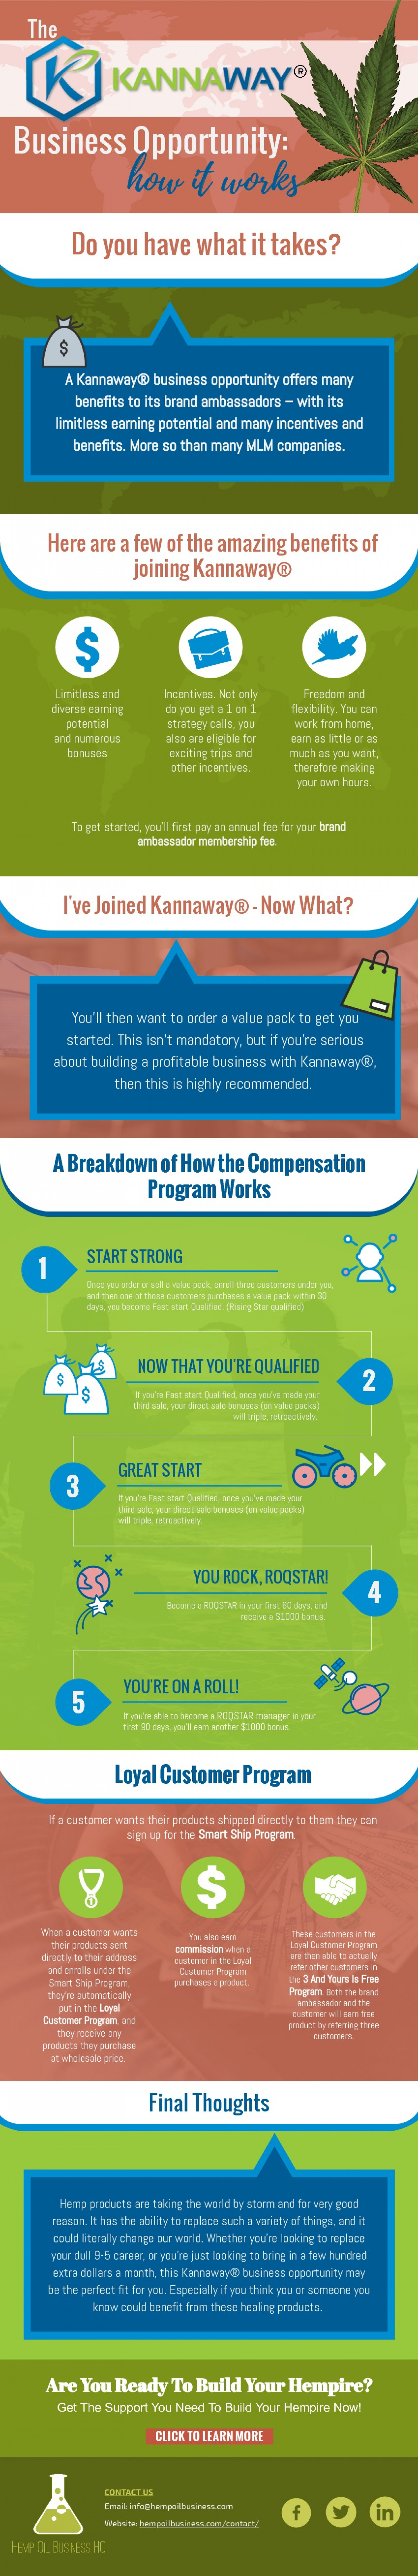 Kannaway MLM Network Marketing Business Opportunity: How It Works Infographic